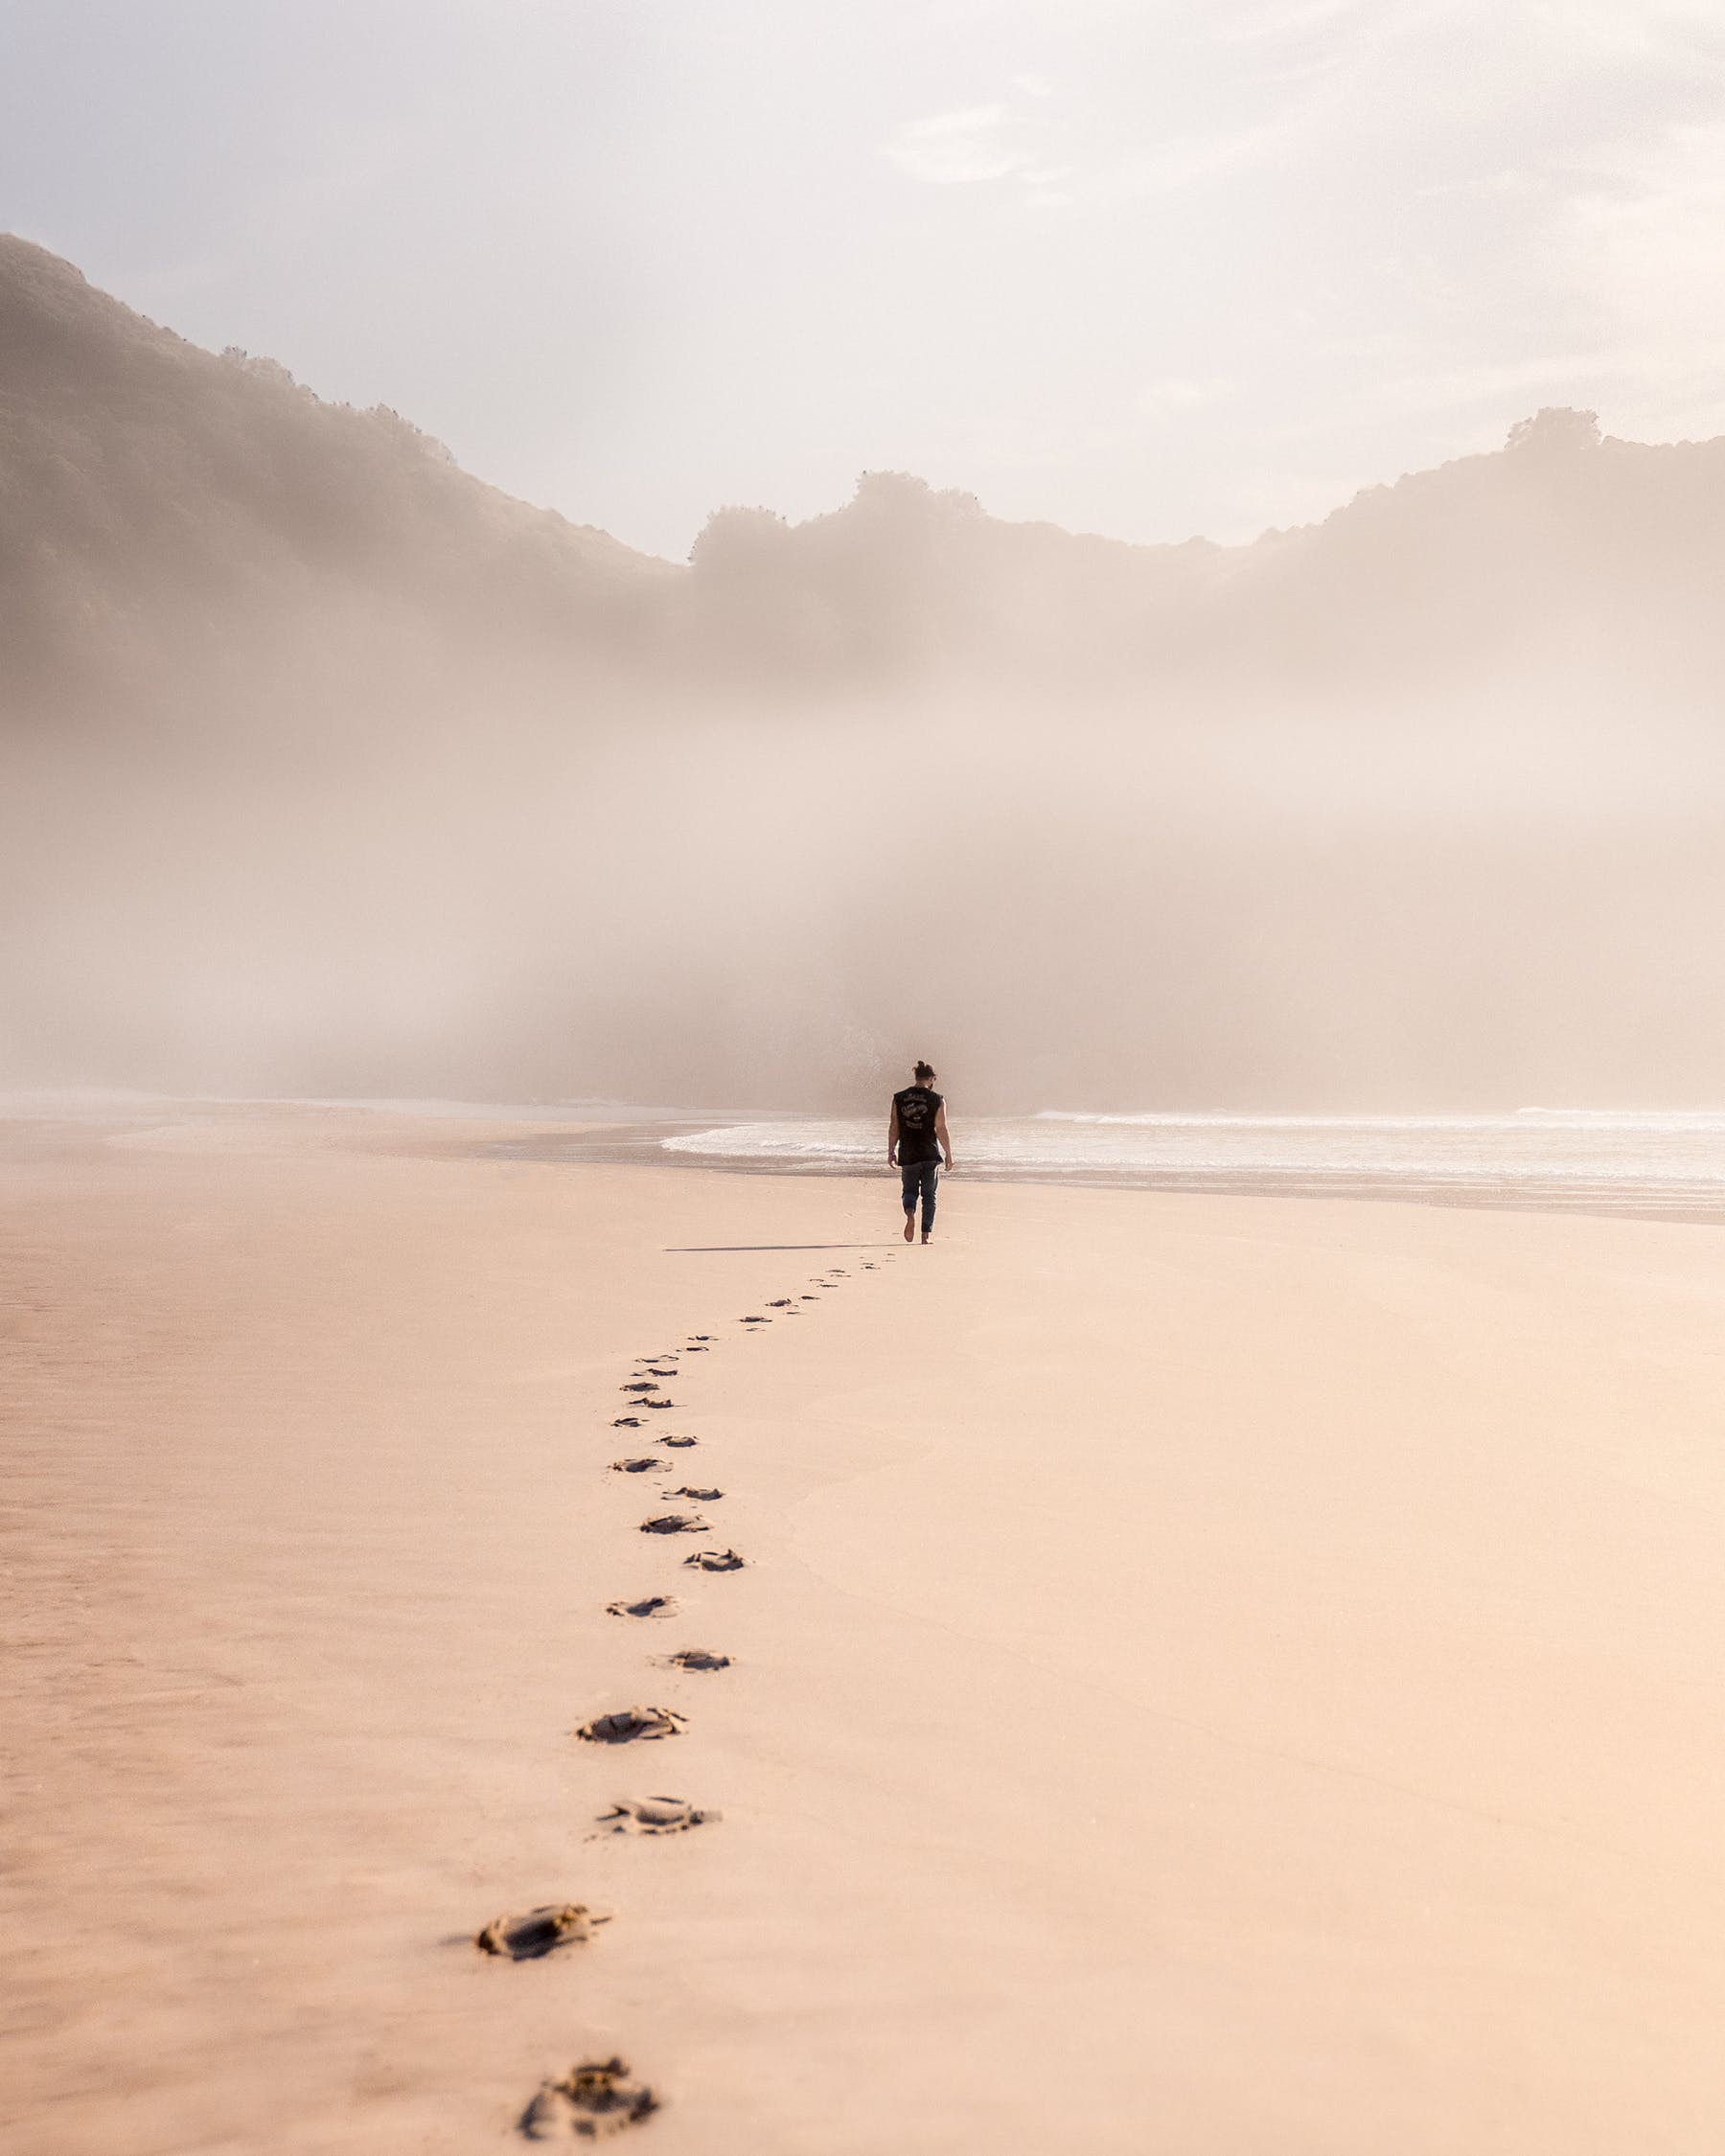 Back view full length male strolling on misty seacoast against rough cliffs and leaving footprints on sand